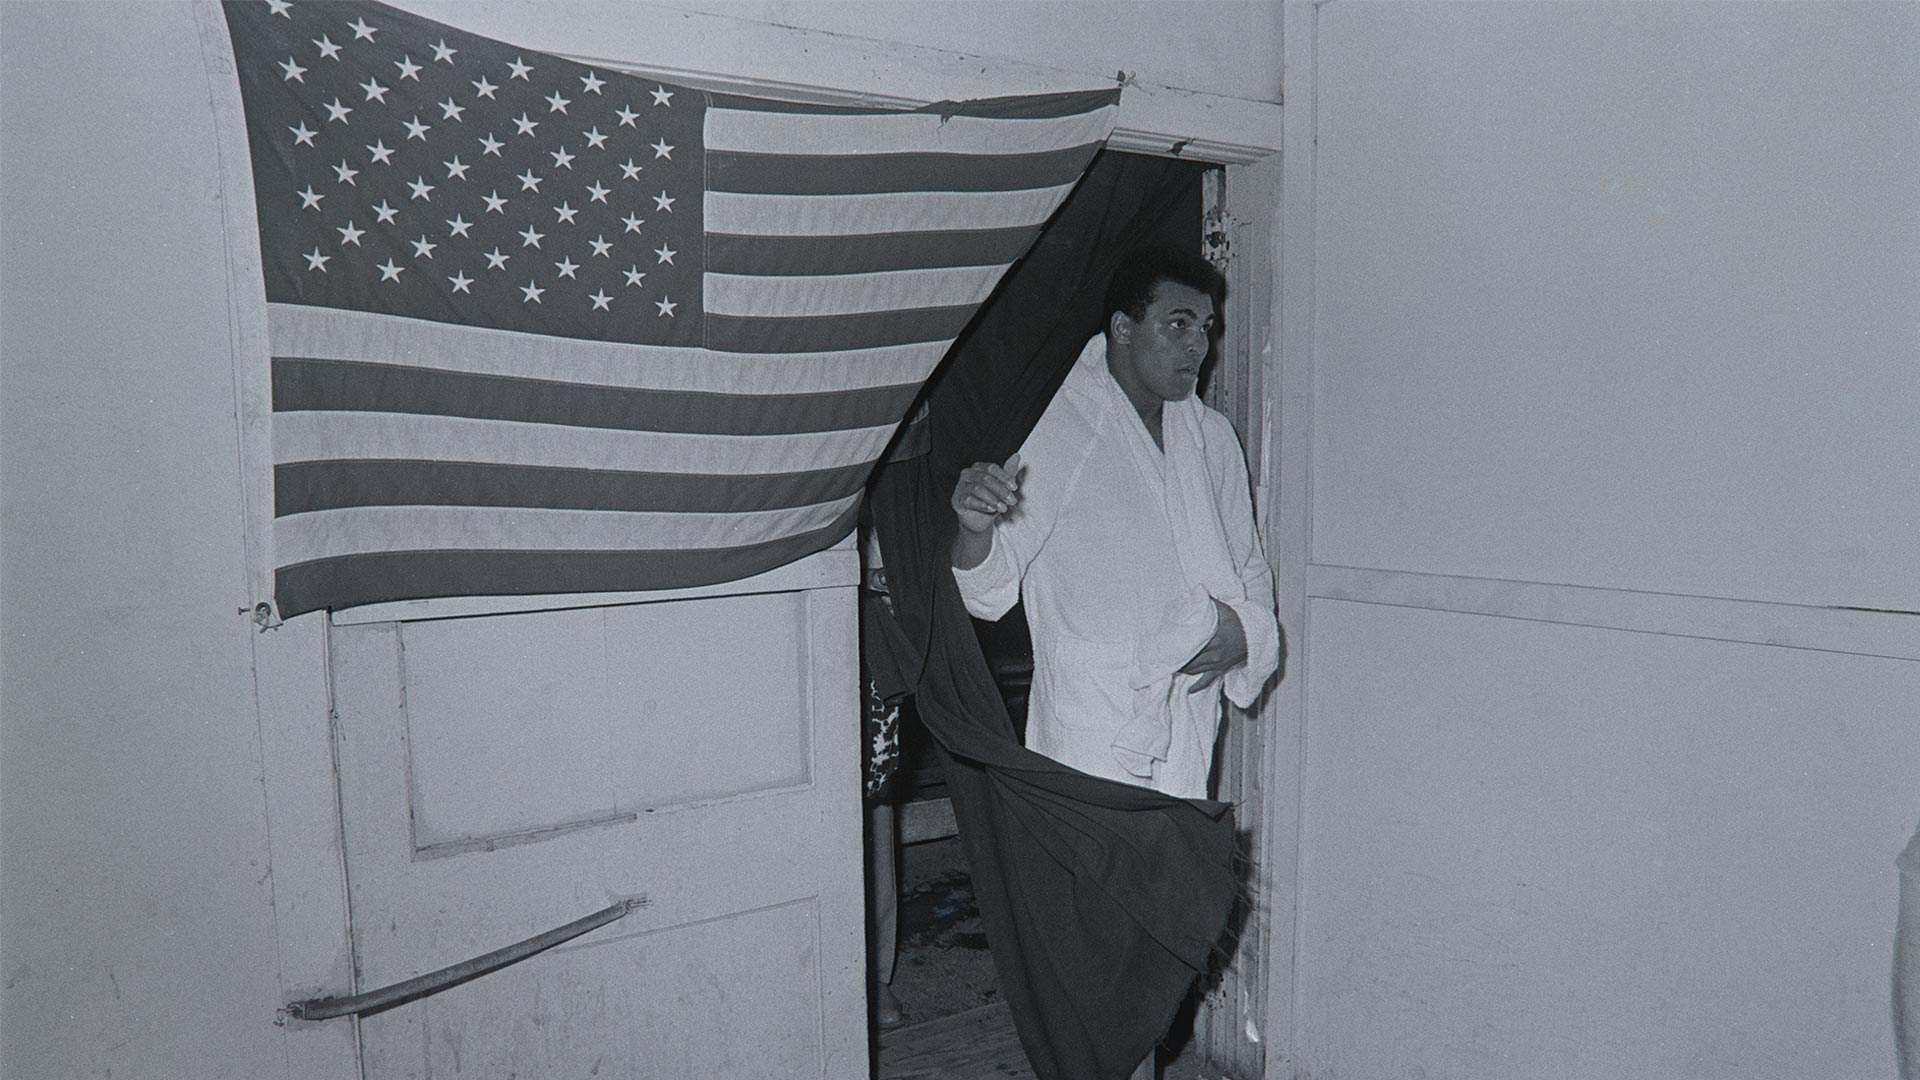 Muhammad Ali coming through doorway draped in a United States flag. Fifth Street Gym. Miami, FL. February 25, 1971.